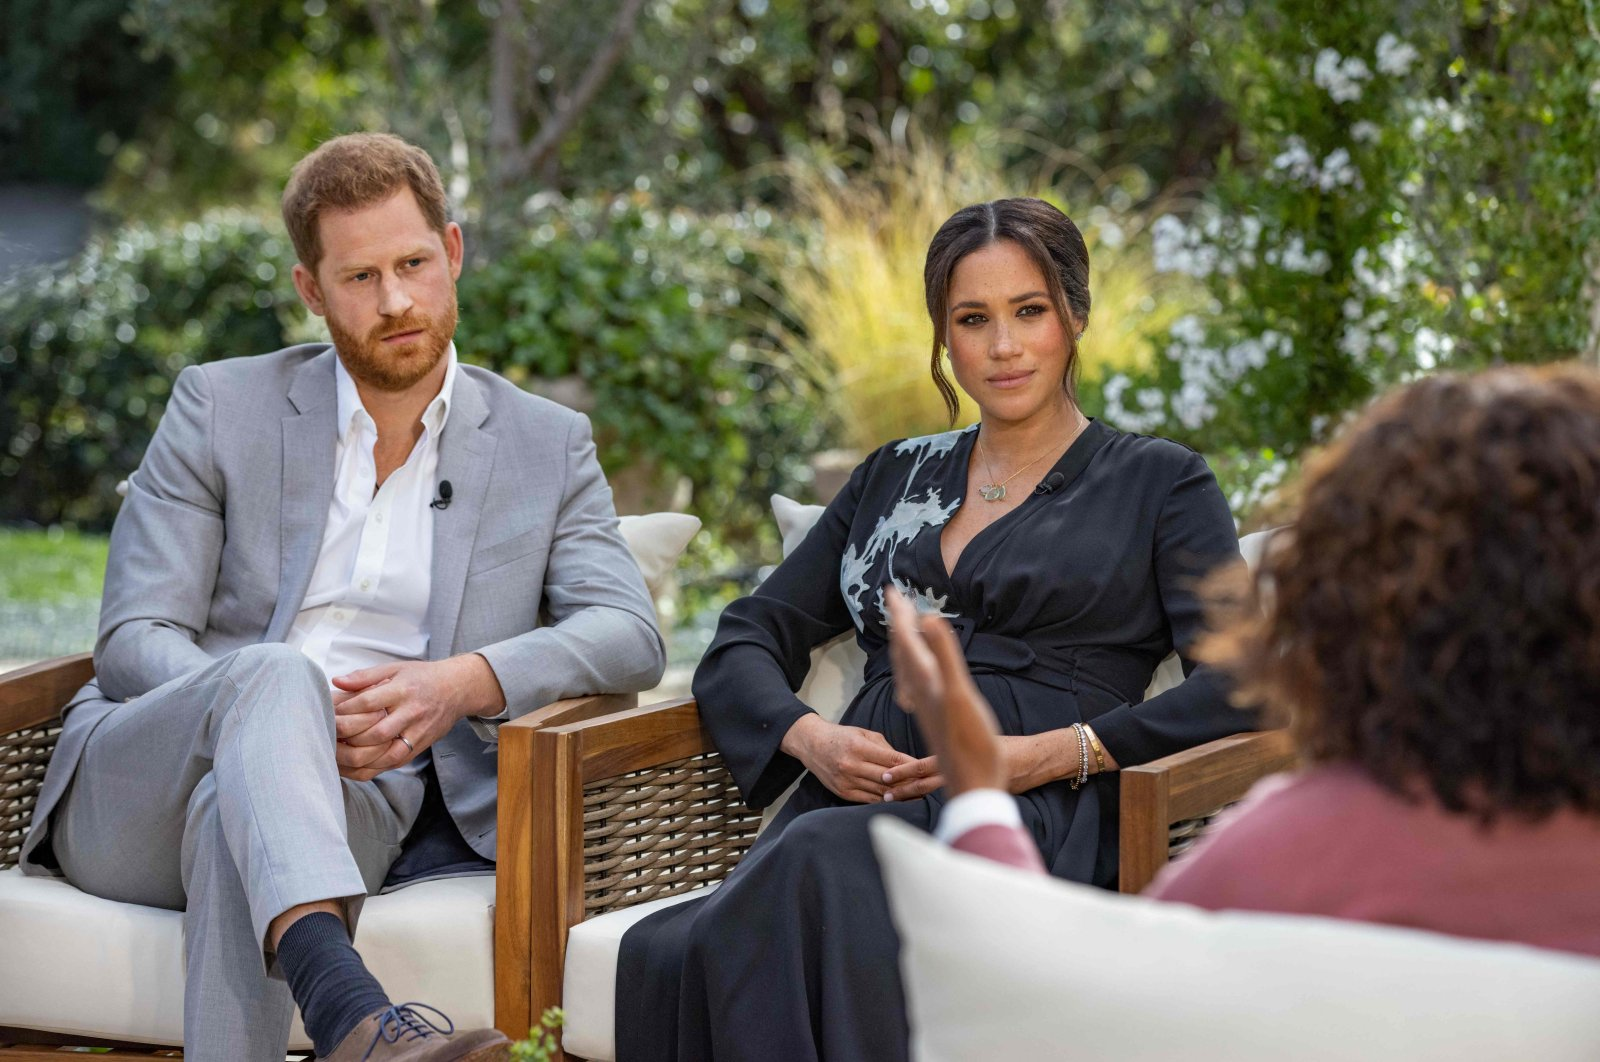 Britain's Prince Harry (L) and his wife Meghan (C), Duchess of Sussex, sit in conversation with U.S. television host Oprah Winfrey, U.S., March 7, 2021. (AFP)